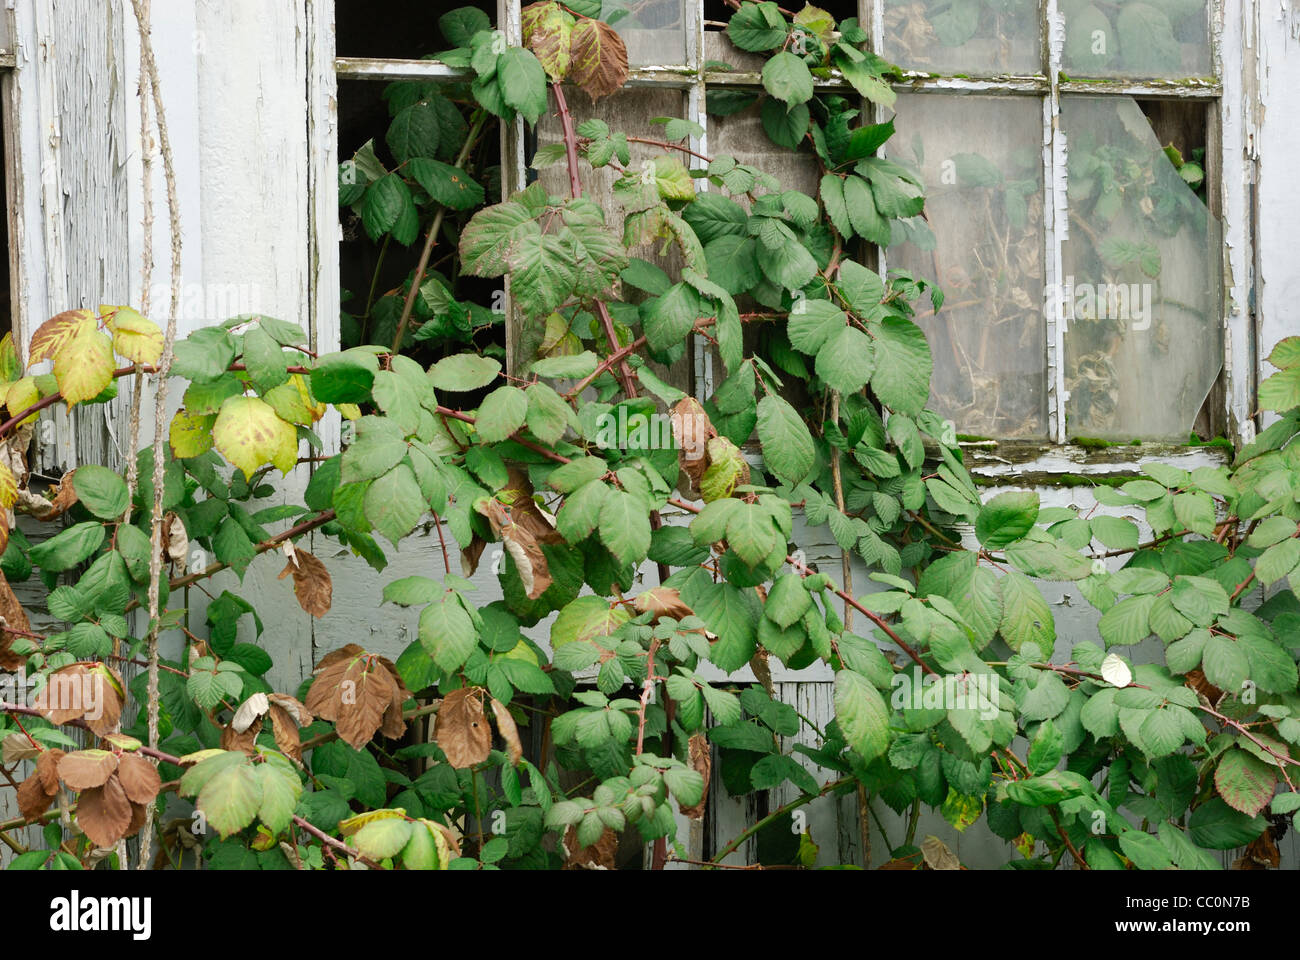 Brambles growing through an old building's broken window panes. - Stock Image